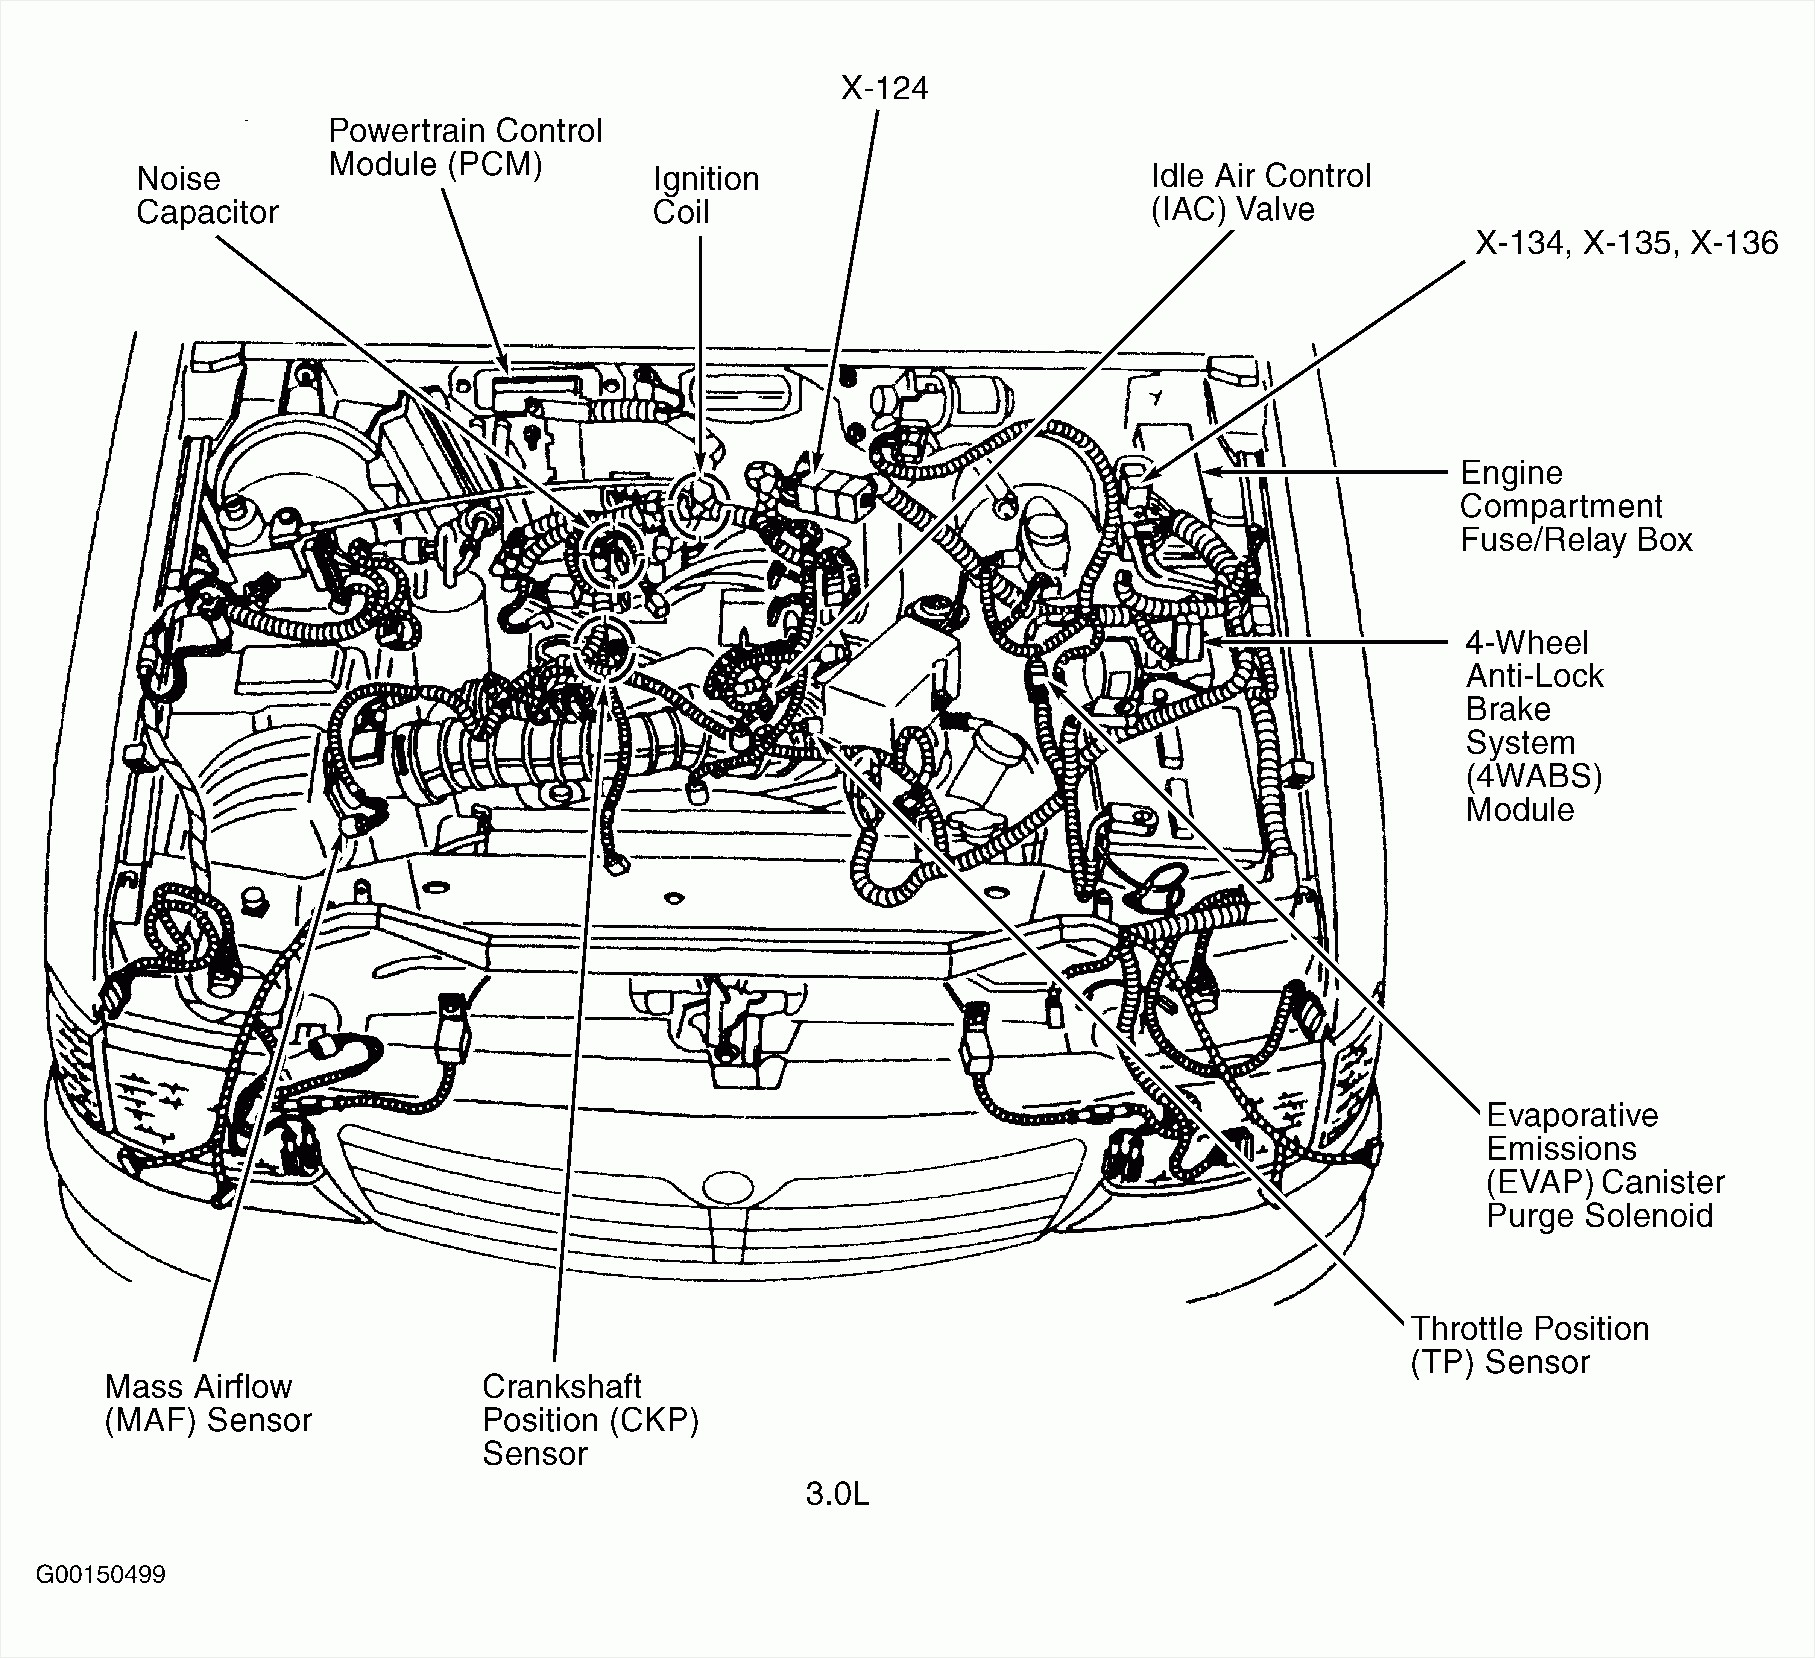 toyota 3 0 v6 engine wiring diagram toyota 3 0 v6 engine 2008 Chrysler Town  Country Diagram Town and Country Engine Diagram